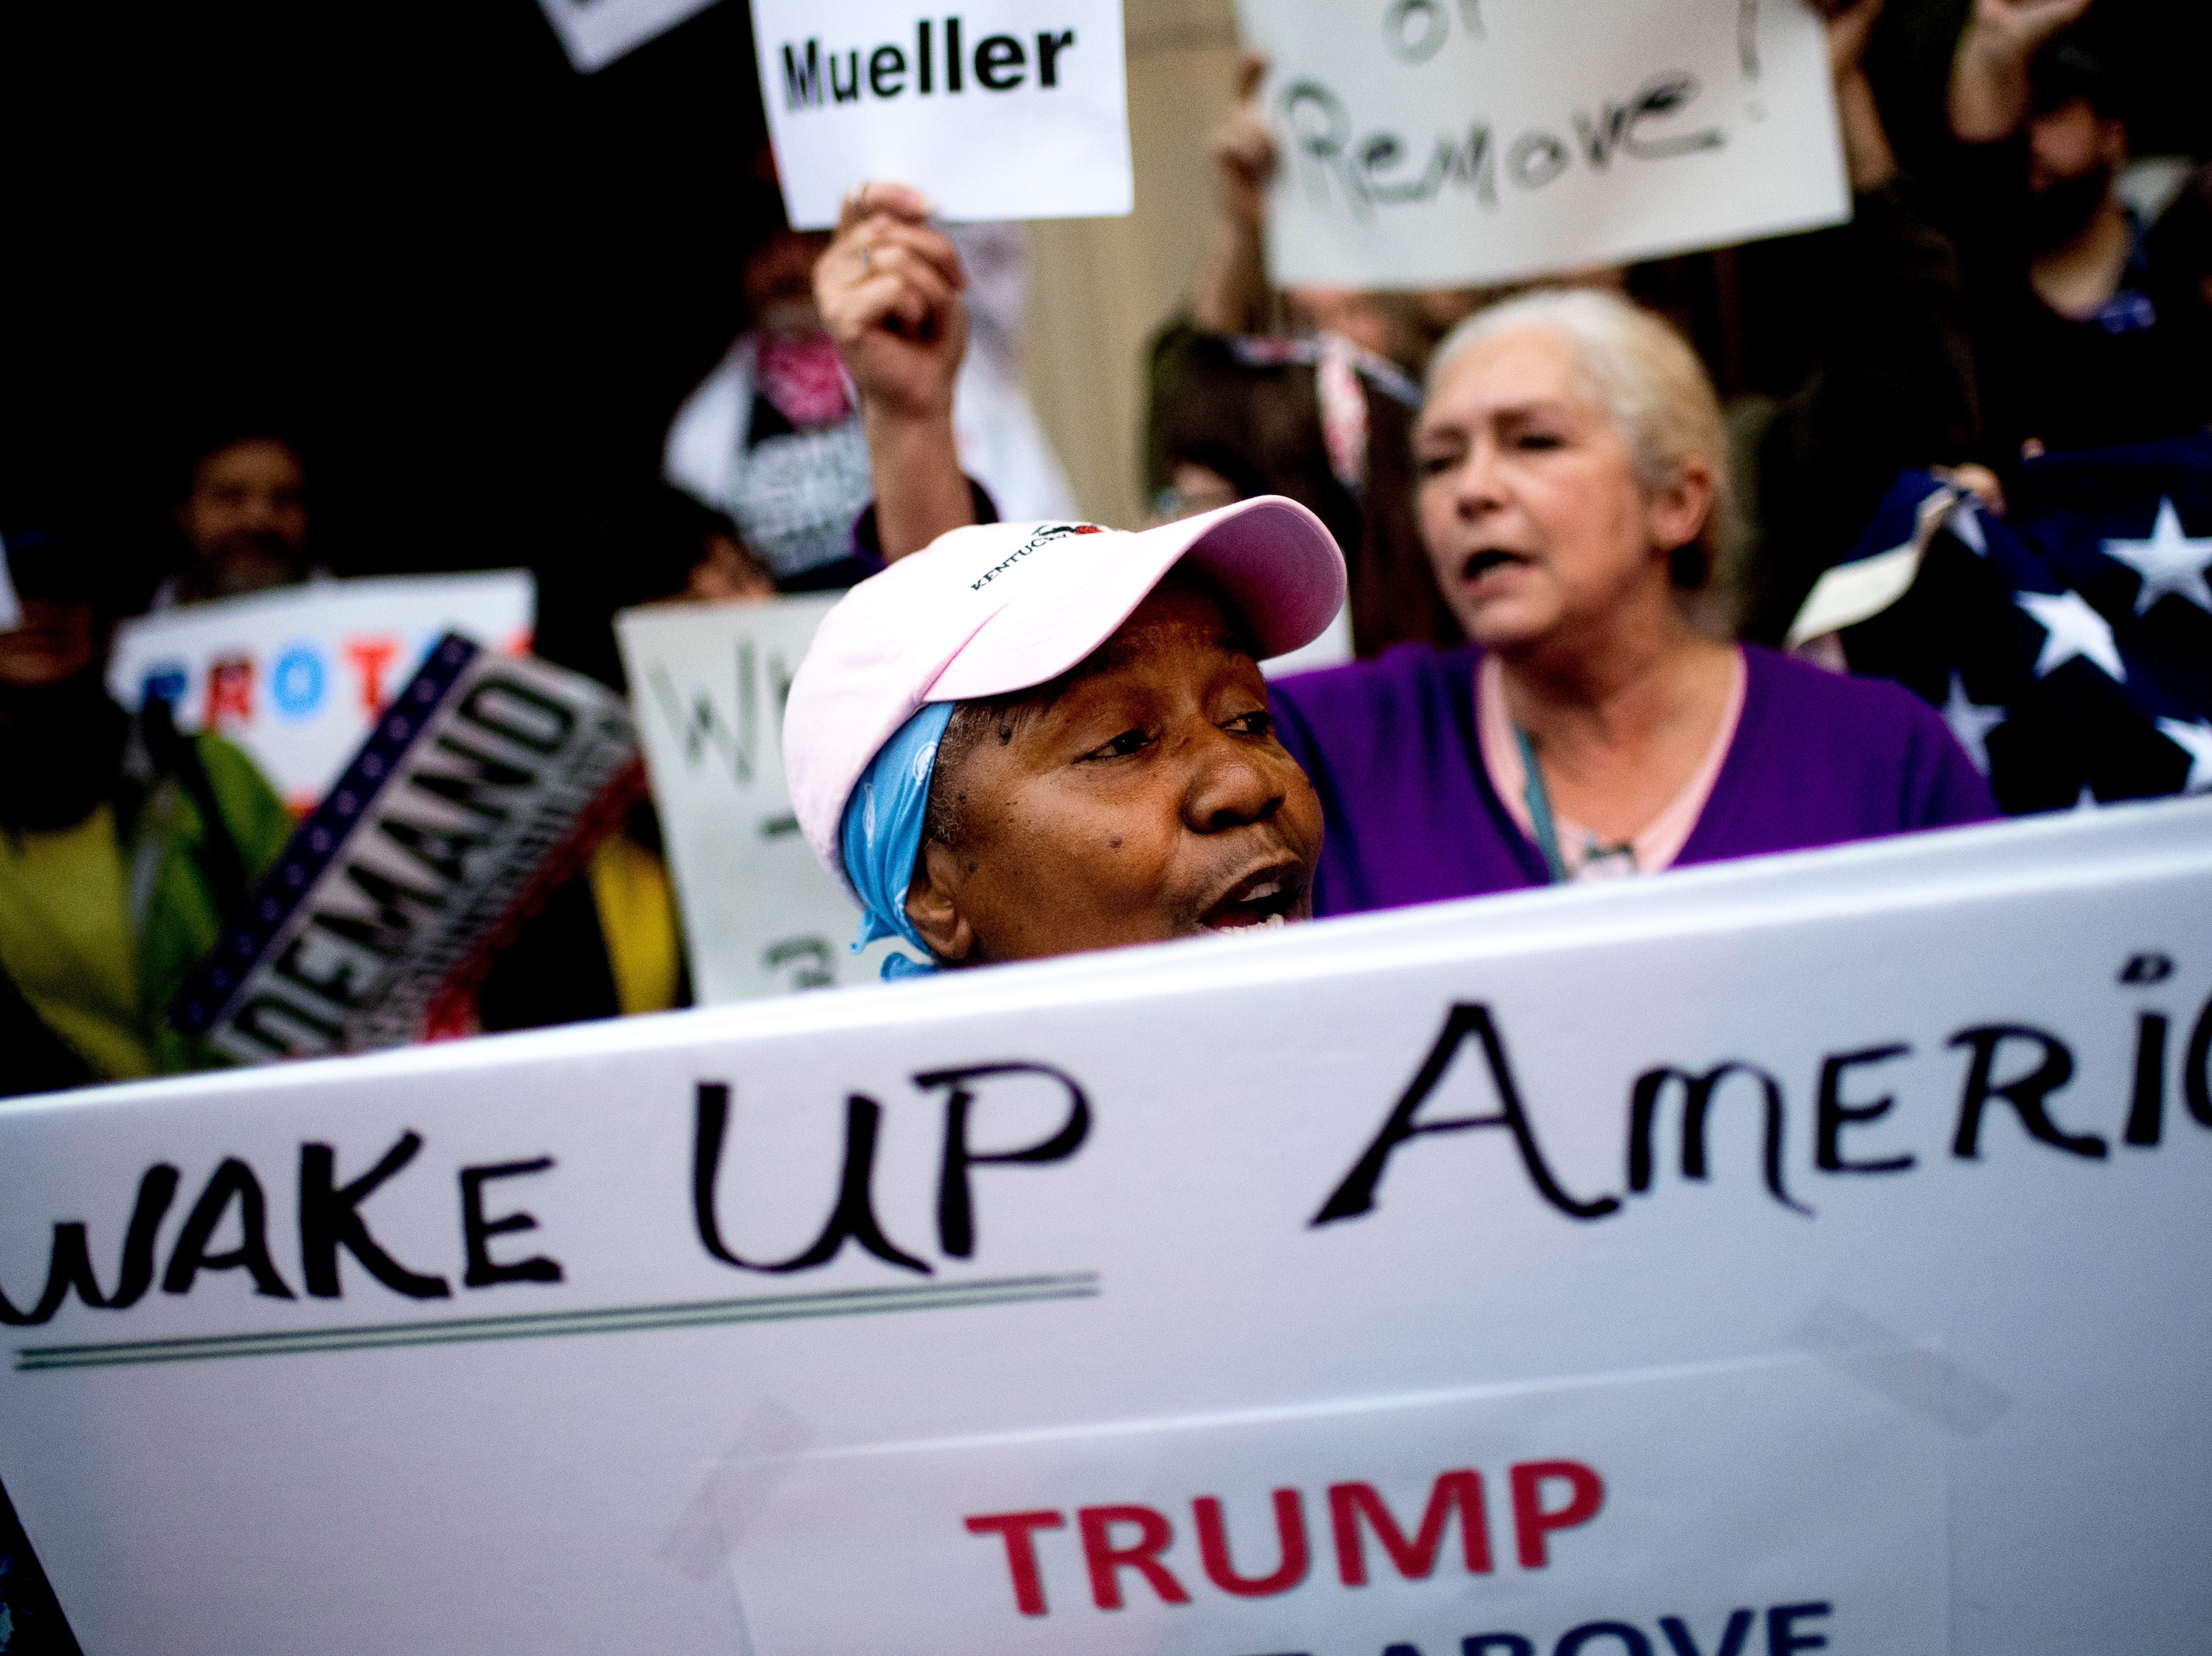 Jackie Hill, of Alcoa, chants during a protest against the firing of United States Attorney General Jeff Sessions outside of the Federal Courthouse in Knoxville, Tennessee on Thursday, November 8, 2018.